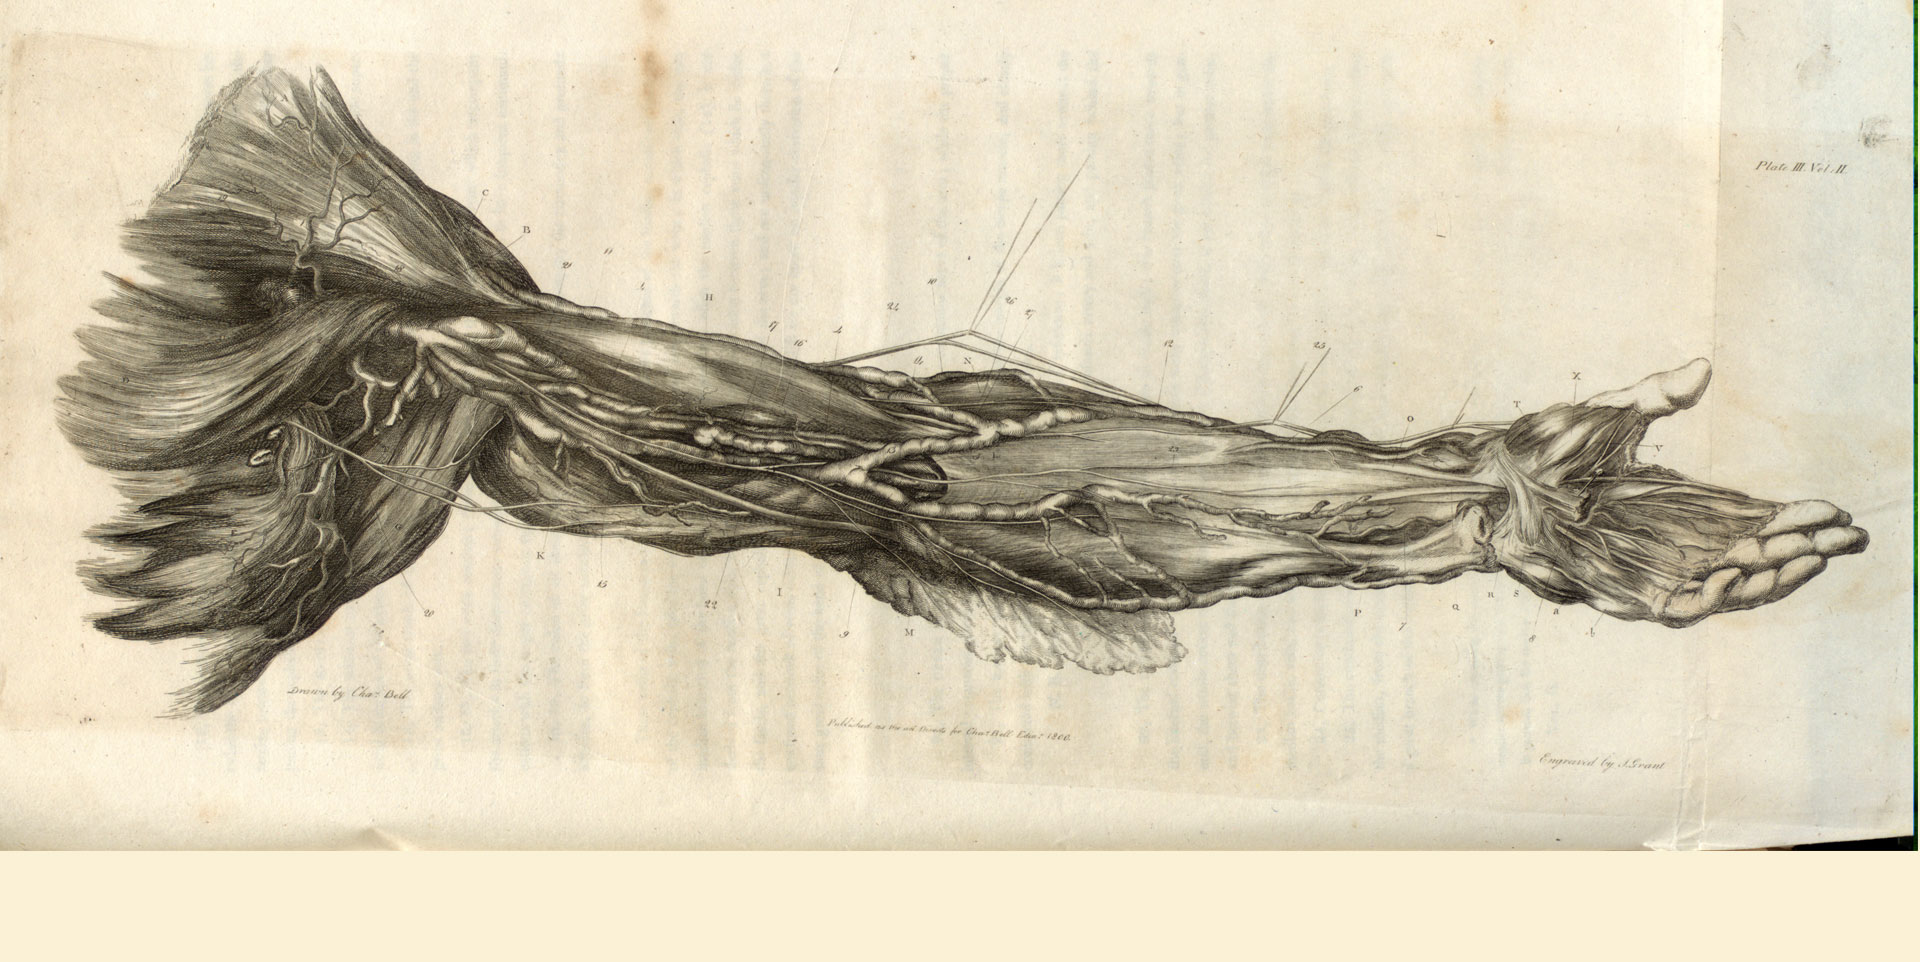 Dissection of the arm and hand.